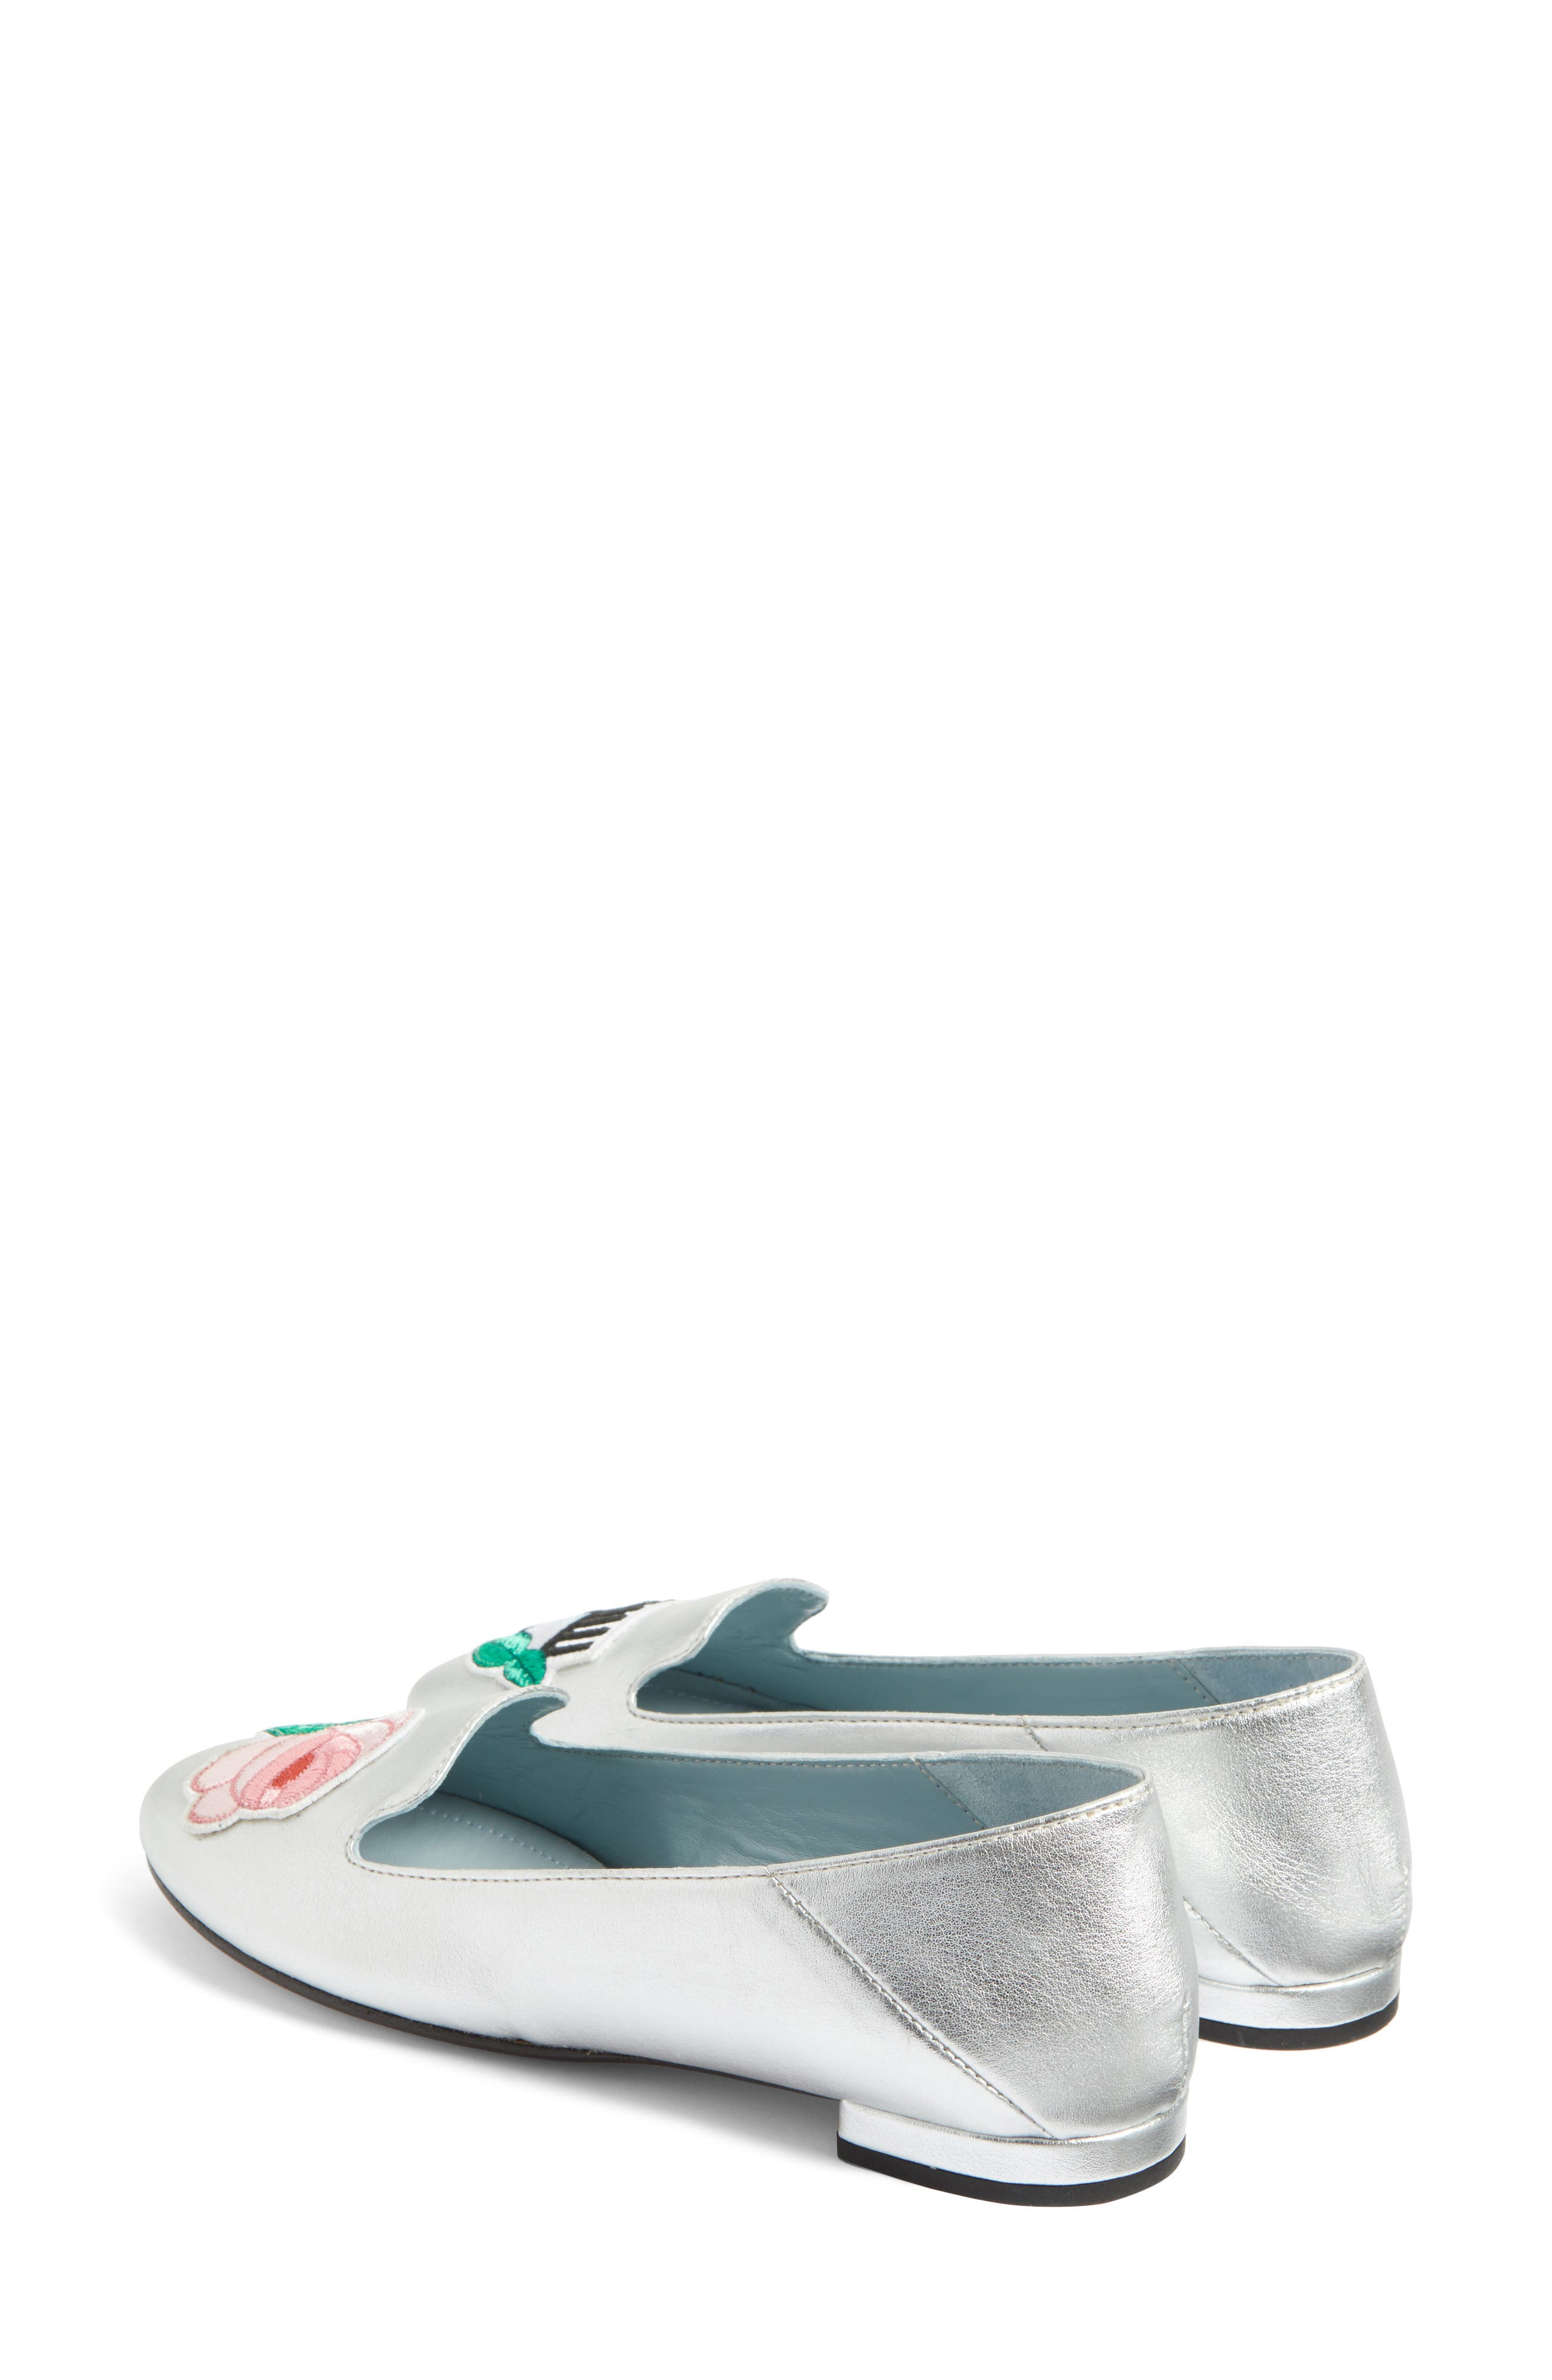 Flower Power Convertible Loafer Flat,                             Alternate thumbnail 3, color,                             Silver